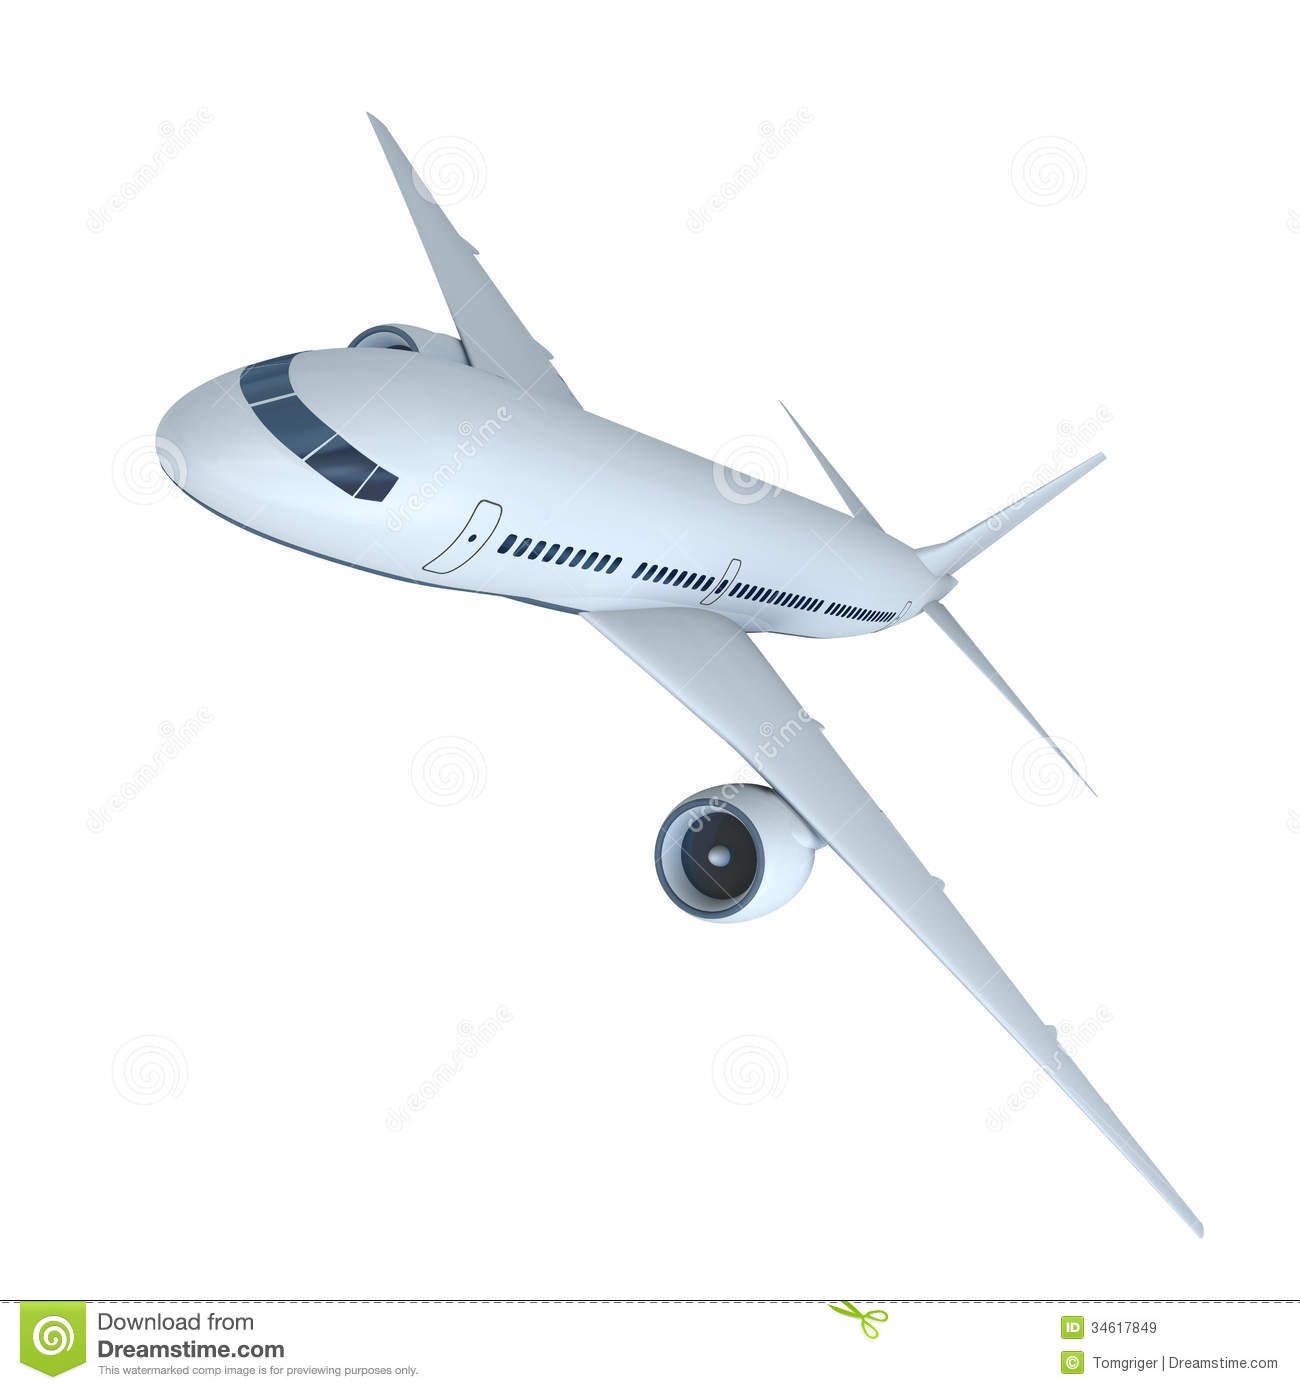 Jet airplane stock illustration. Illustration of plane ...